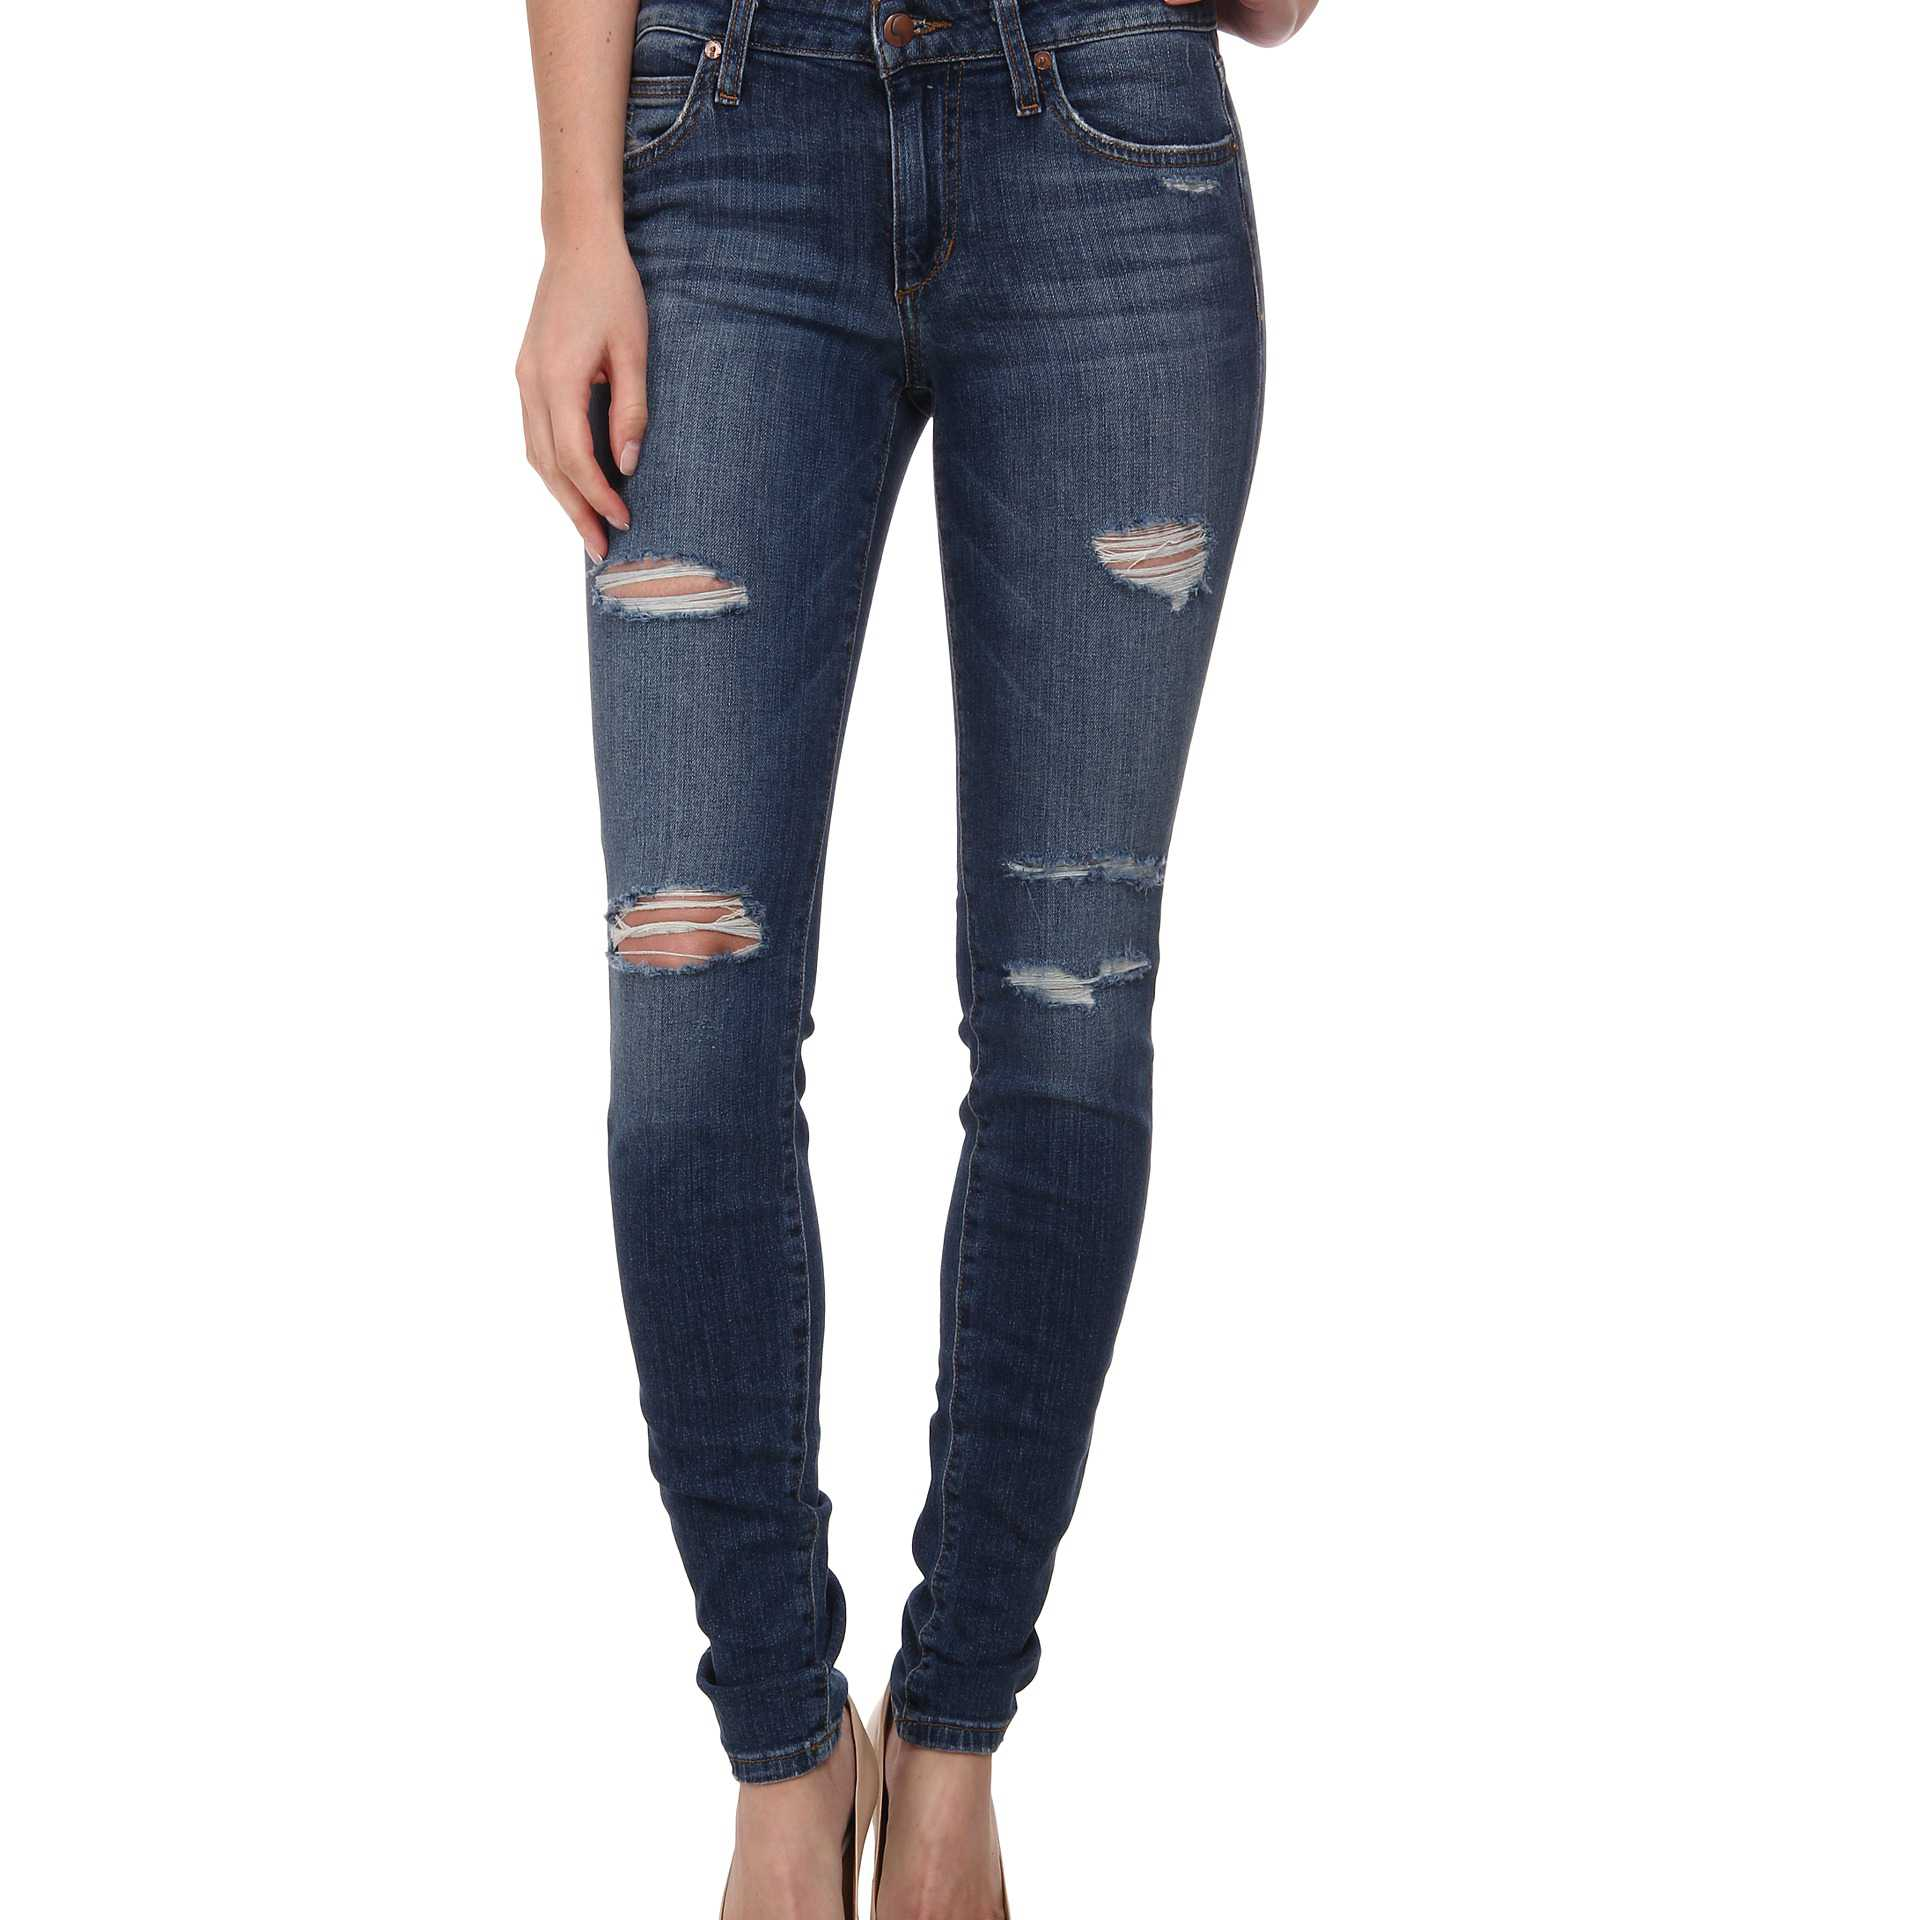 8c5ebea4c Jeans That Look Great on Short Women and Petites